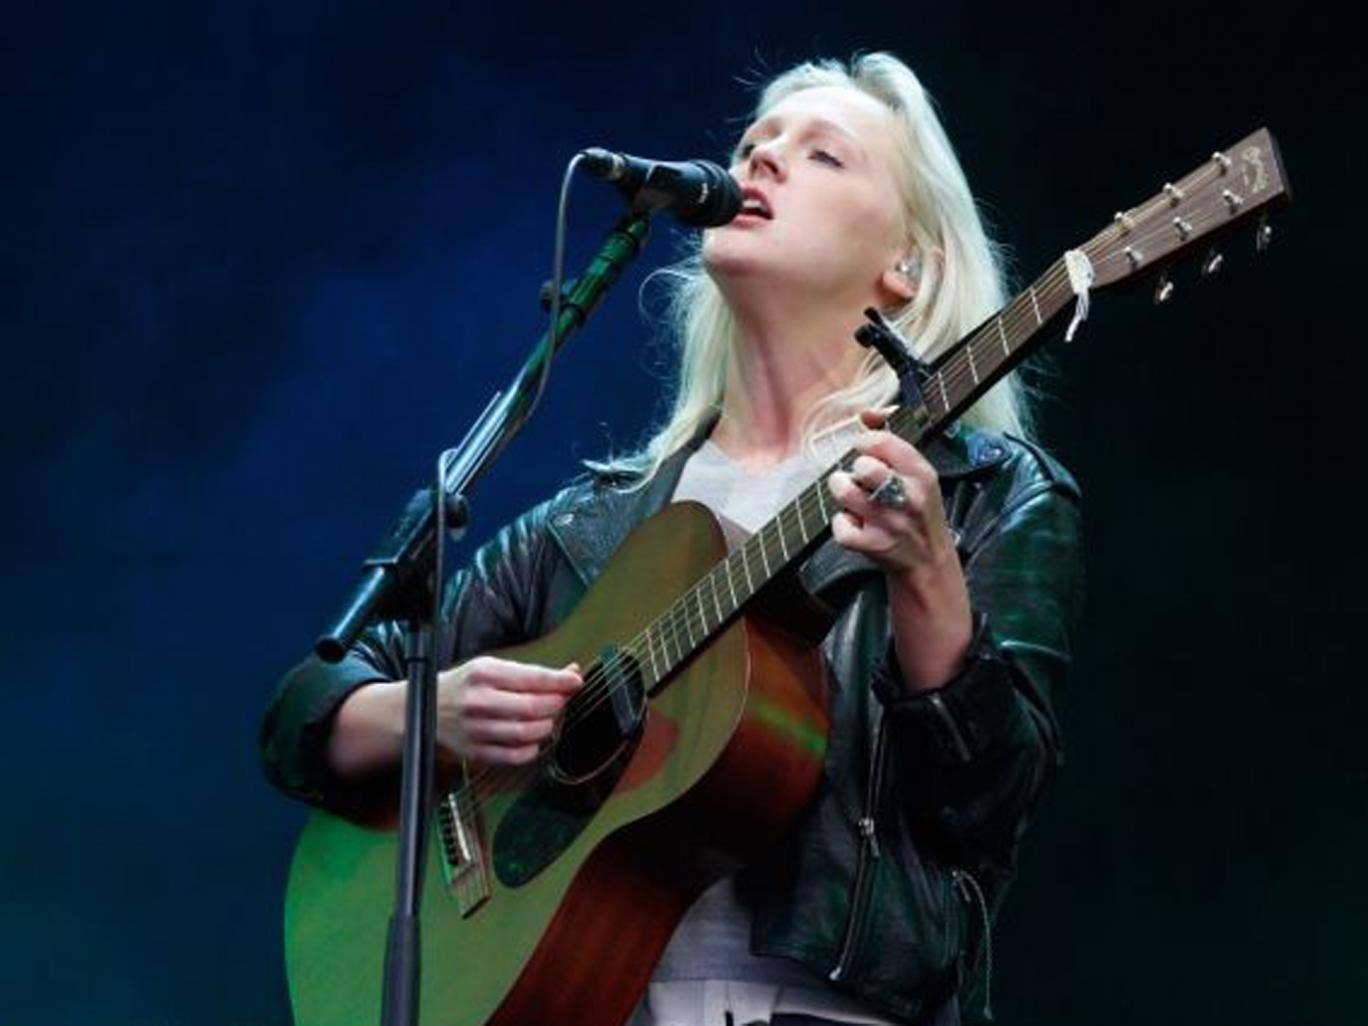 Laura Marling has moved to California, but don't expect a sunnier outlook